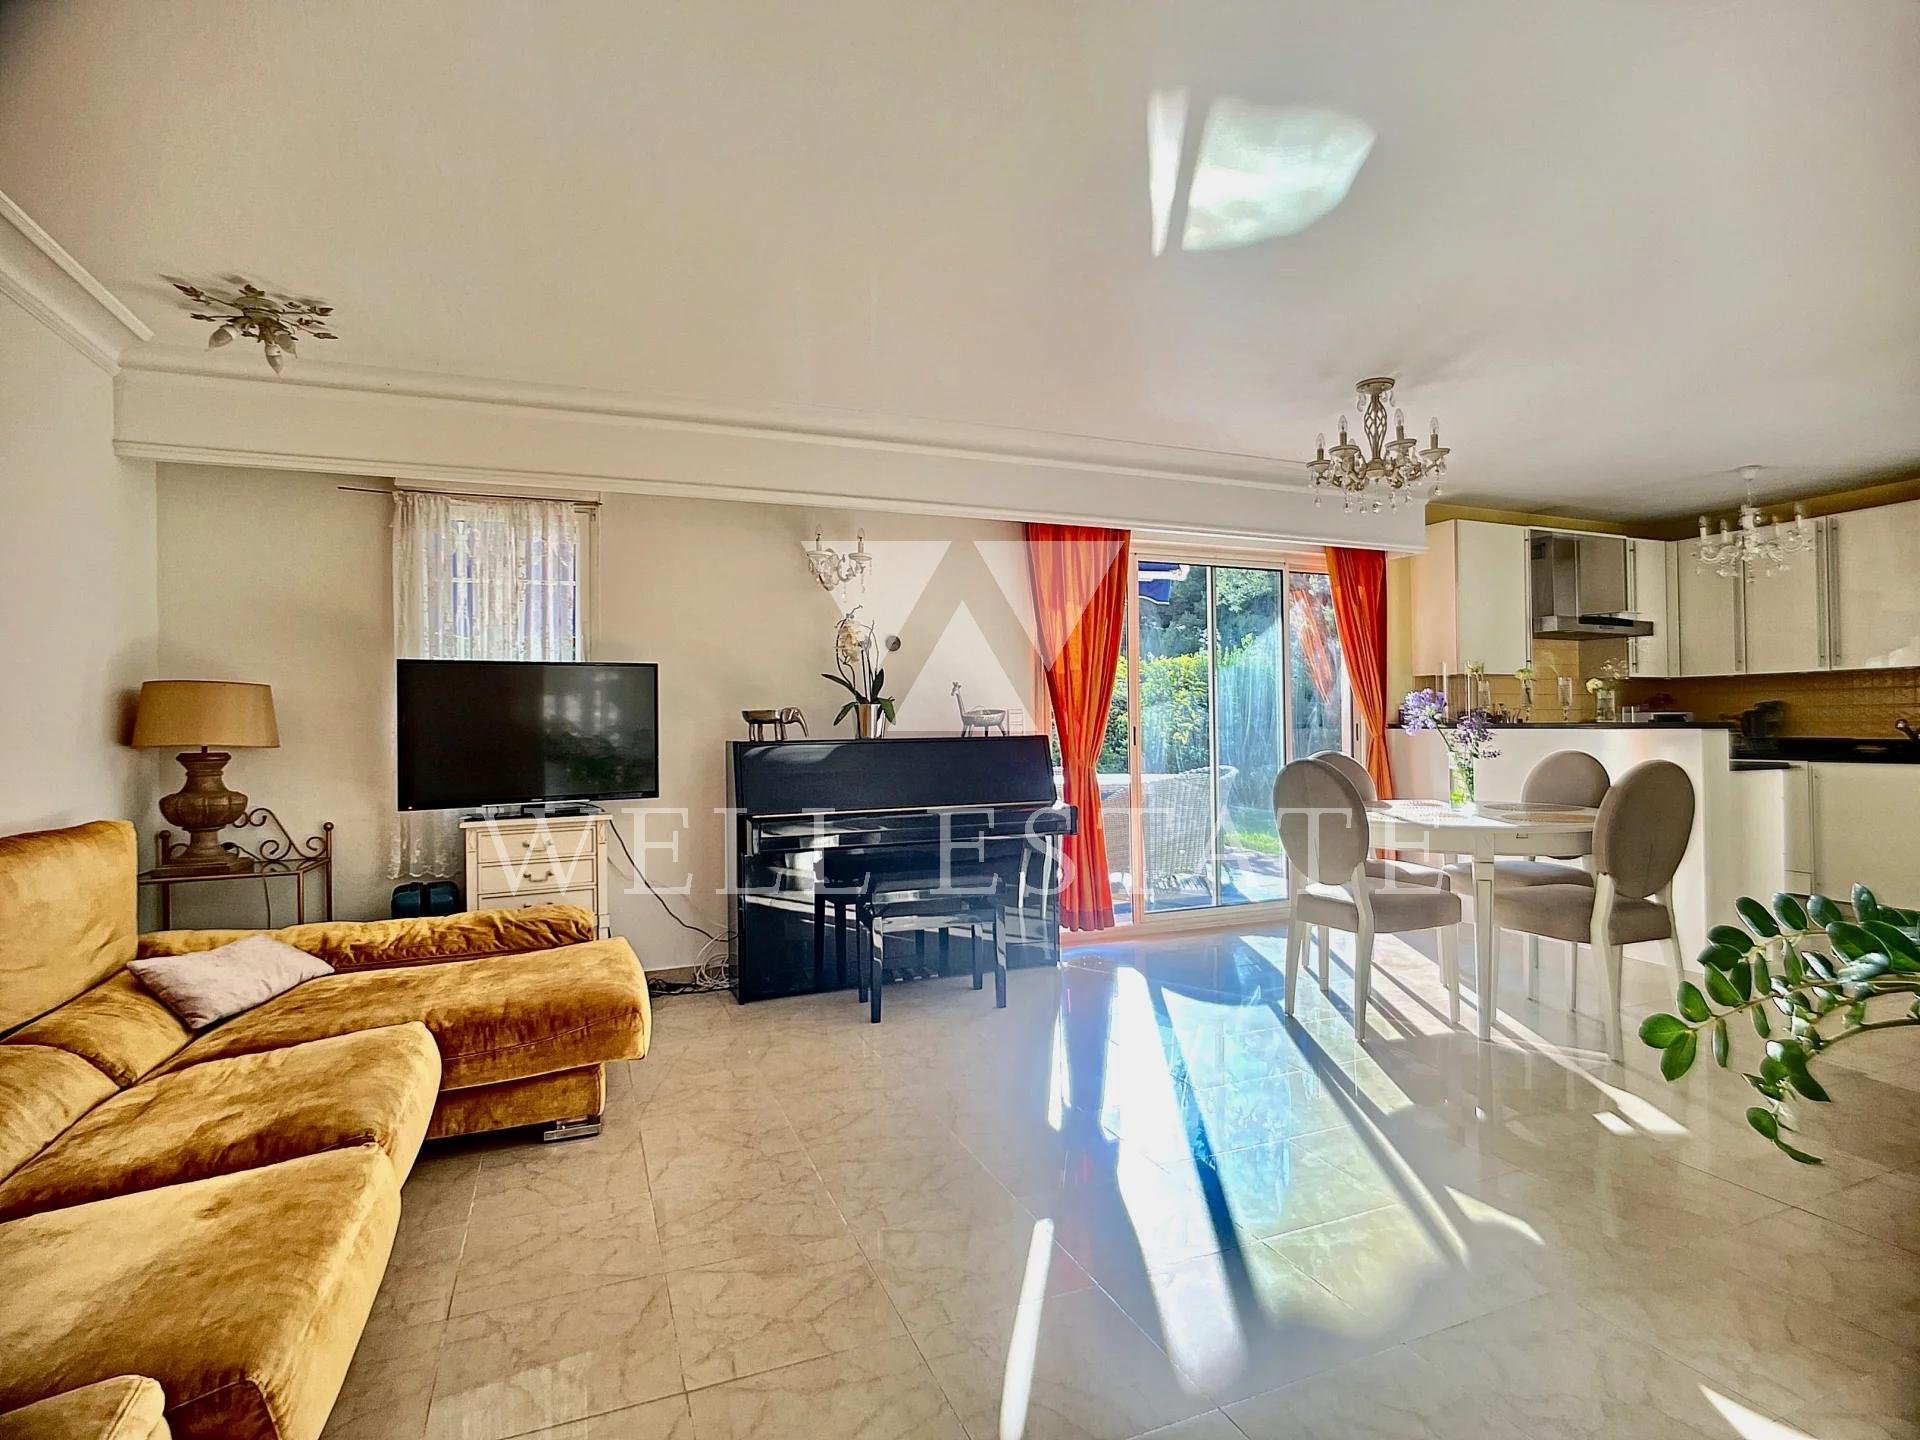 CAP D'ANTIBES 3 BEDROOM APARTMENT GATED RESIDENCE SWIMMING POOL PARC